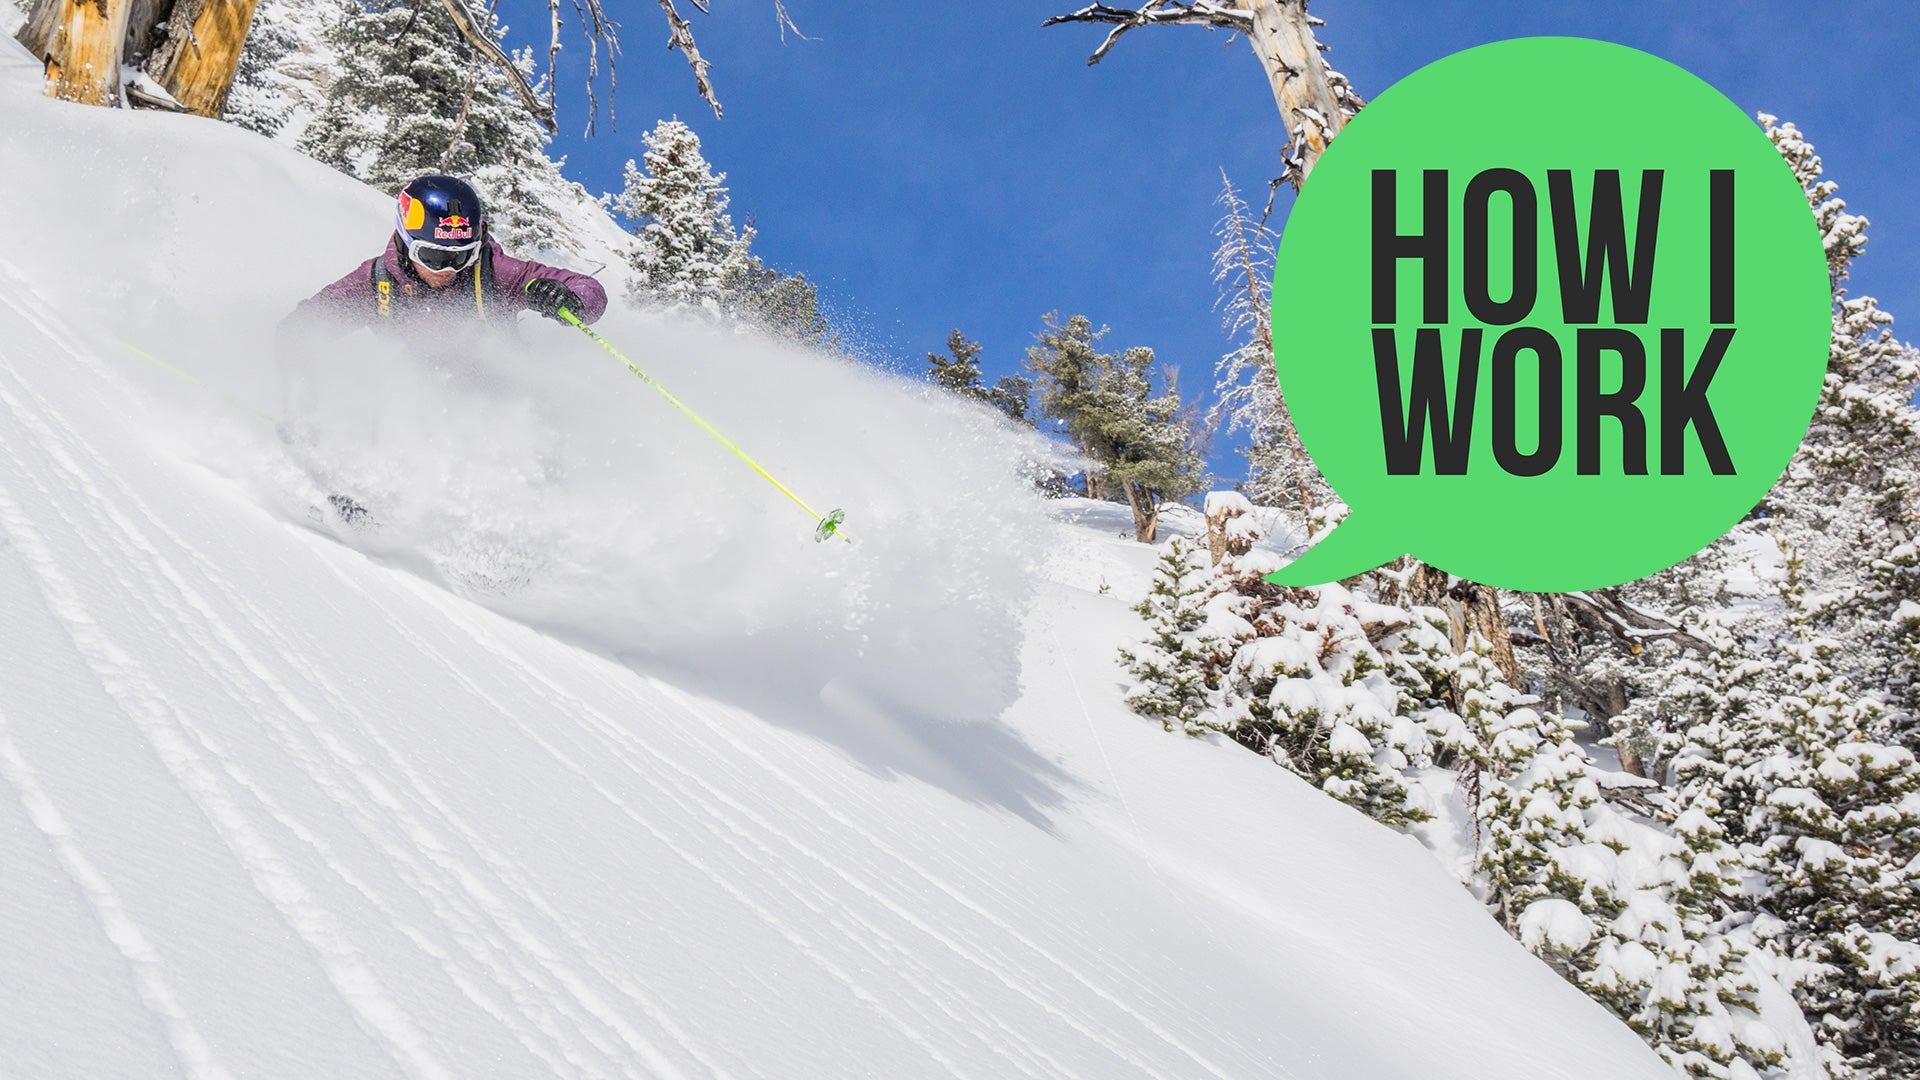 I'm Pro Skier Grete Eliassen, And This Is How I Work